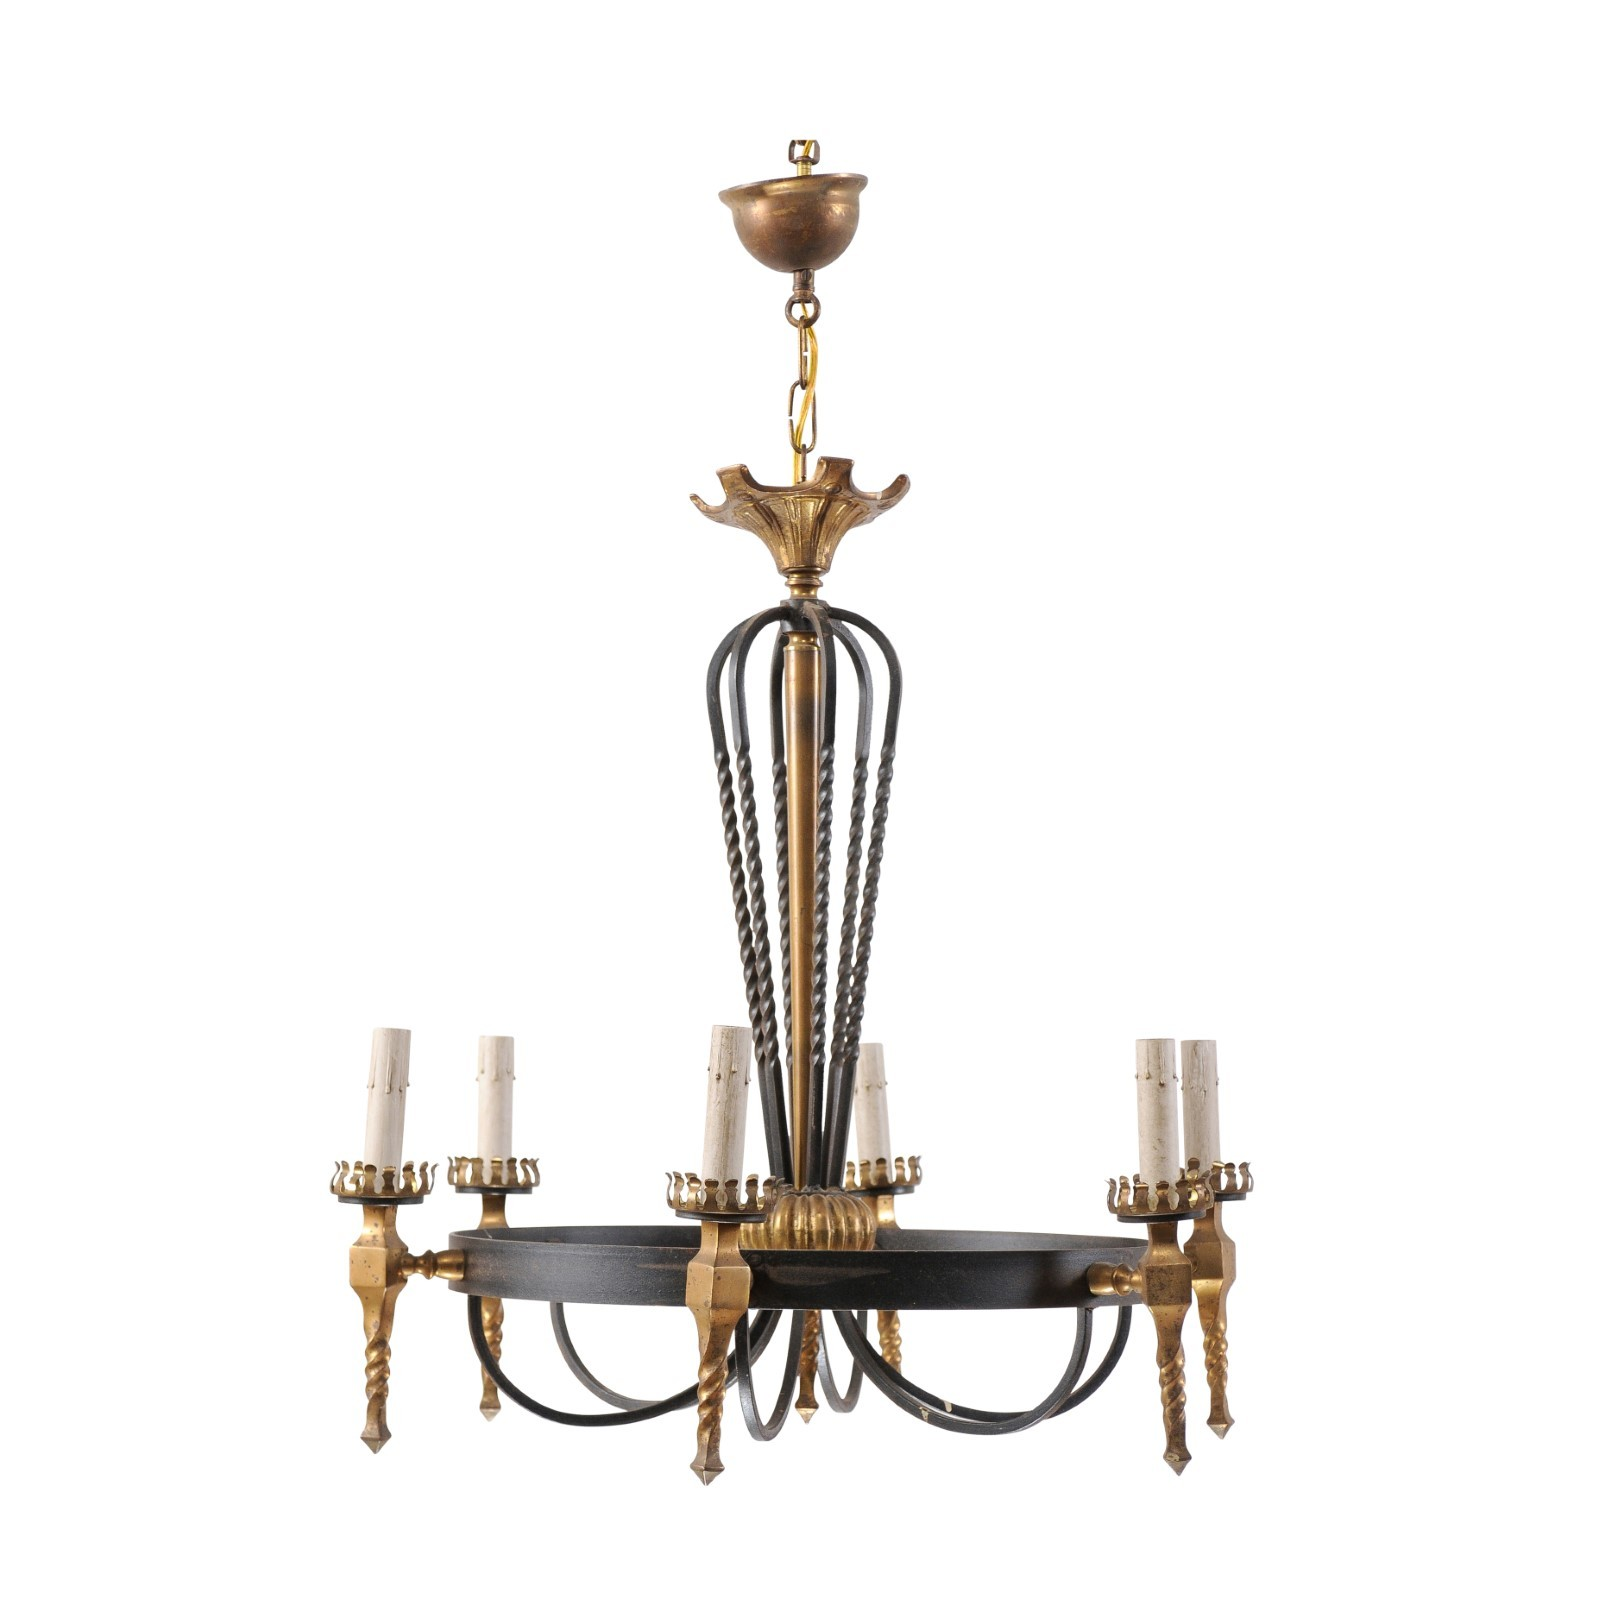 Vintage Chandelier in Black & Gold Tones